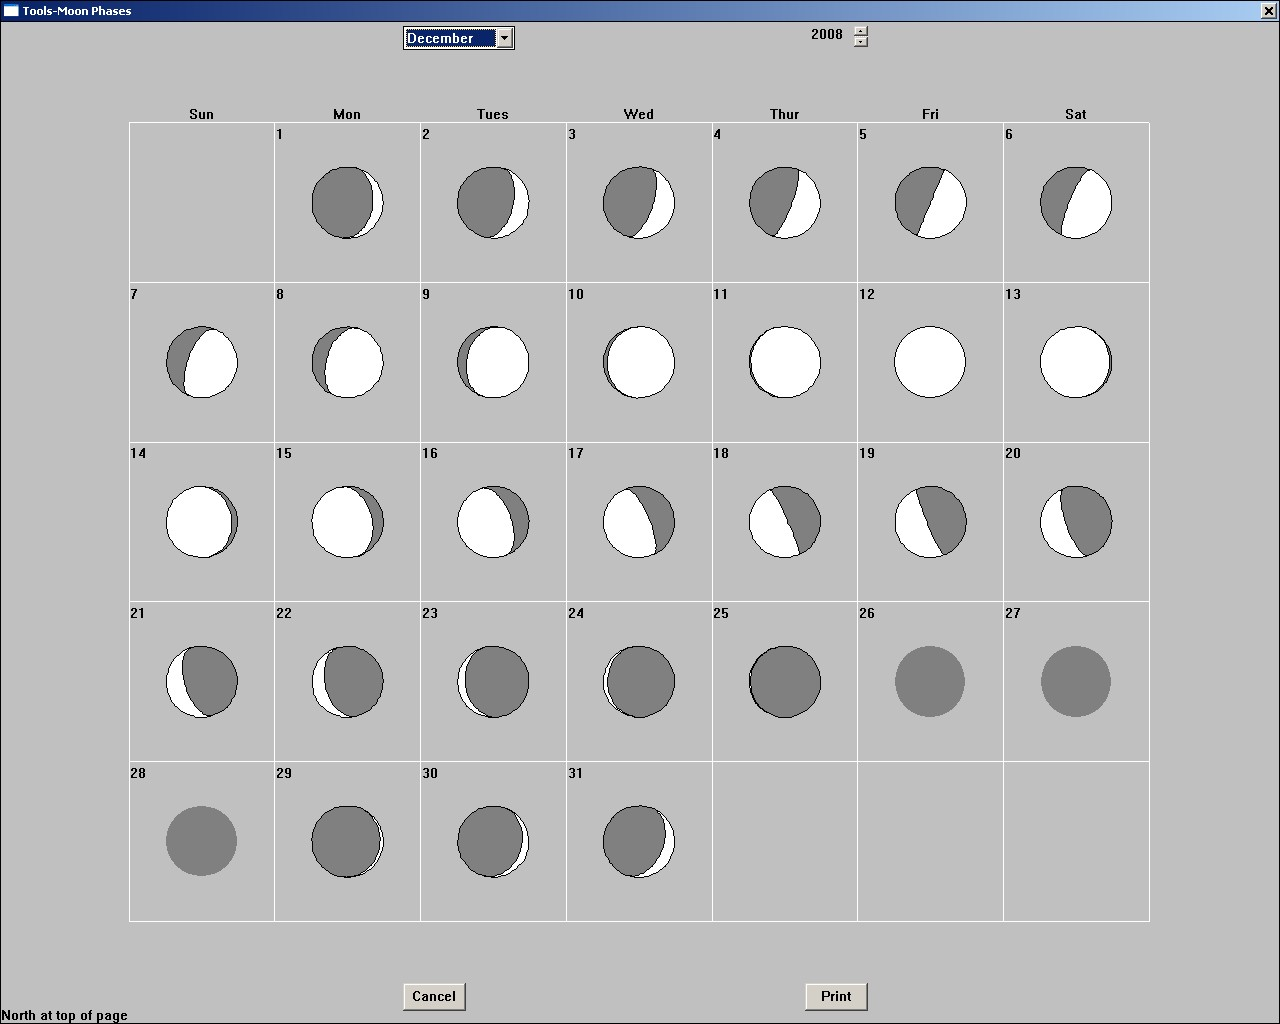 Moon Phases - 2008